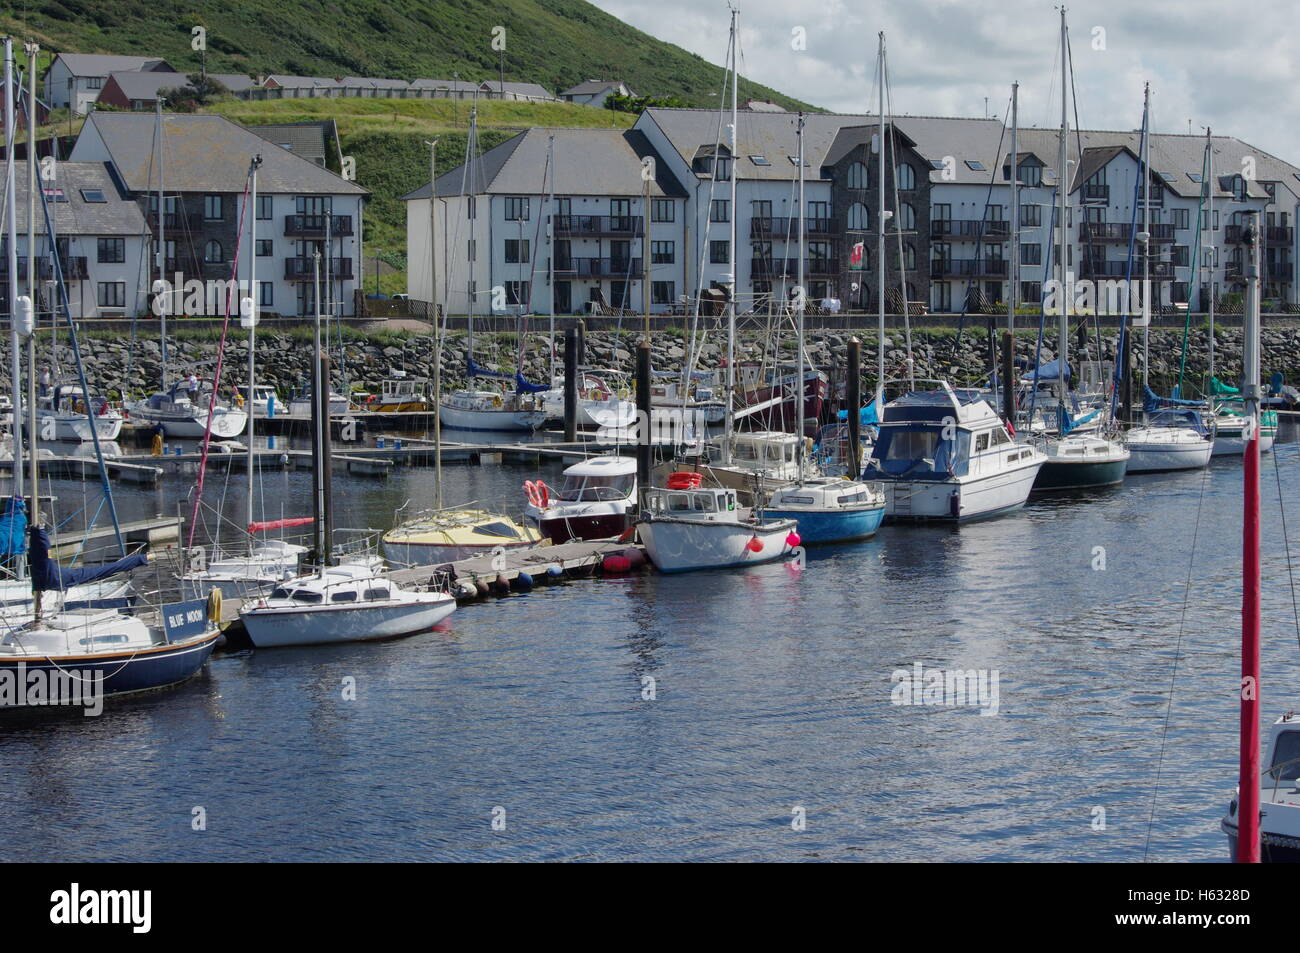 View overlooking the boats at Aberystwyth Harbour / Marina facing towards Y Lanfa, Trefechen. - Stock Image